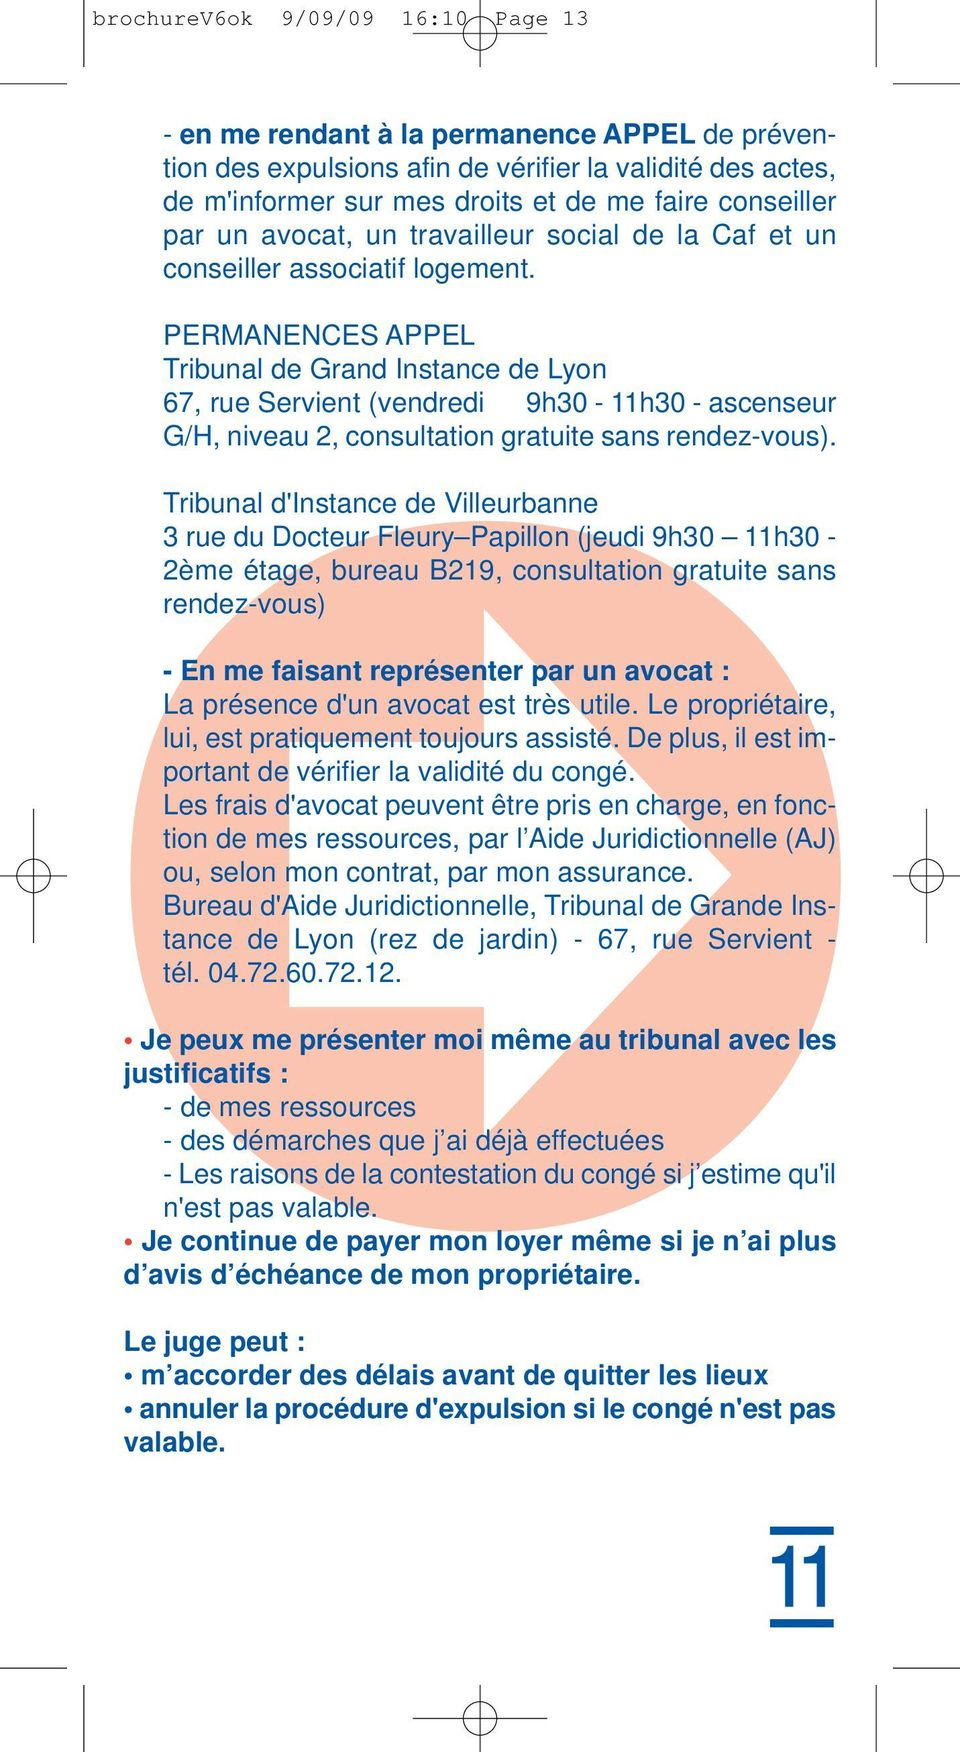 A p p e l action permanente de pr vention des expulsions locatives pdf - Bureau d aide juridictionnelle paris ...